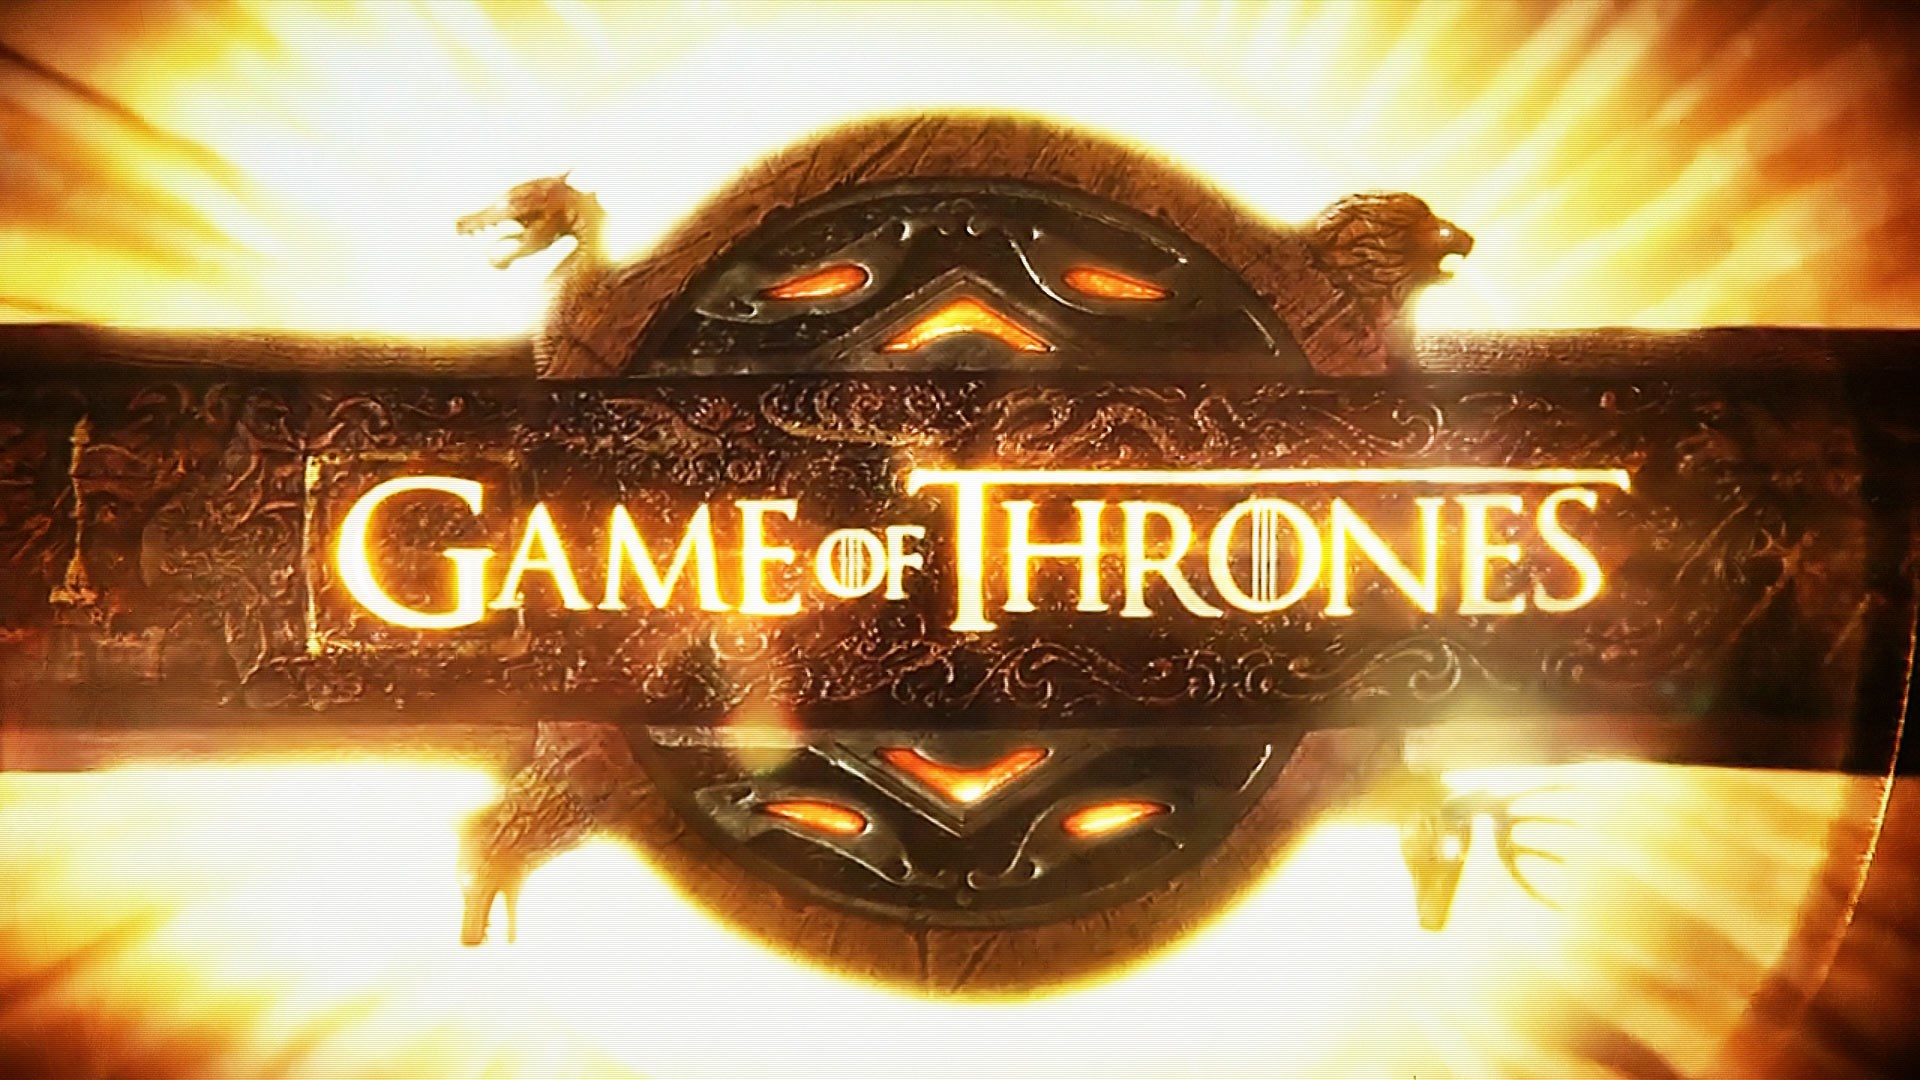 game-of-thrones-1080p-high-quality-wallpaper-wp3801086